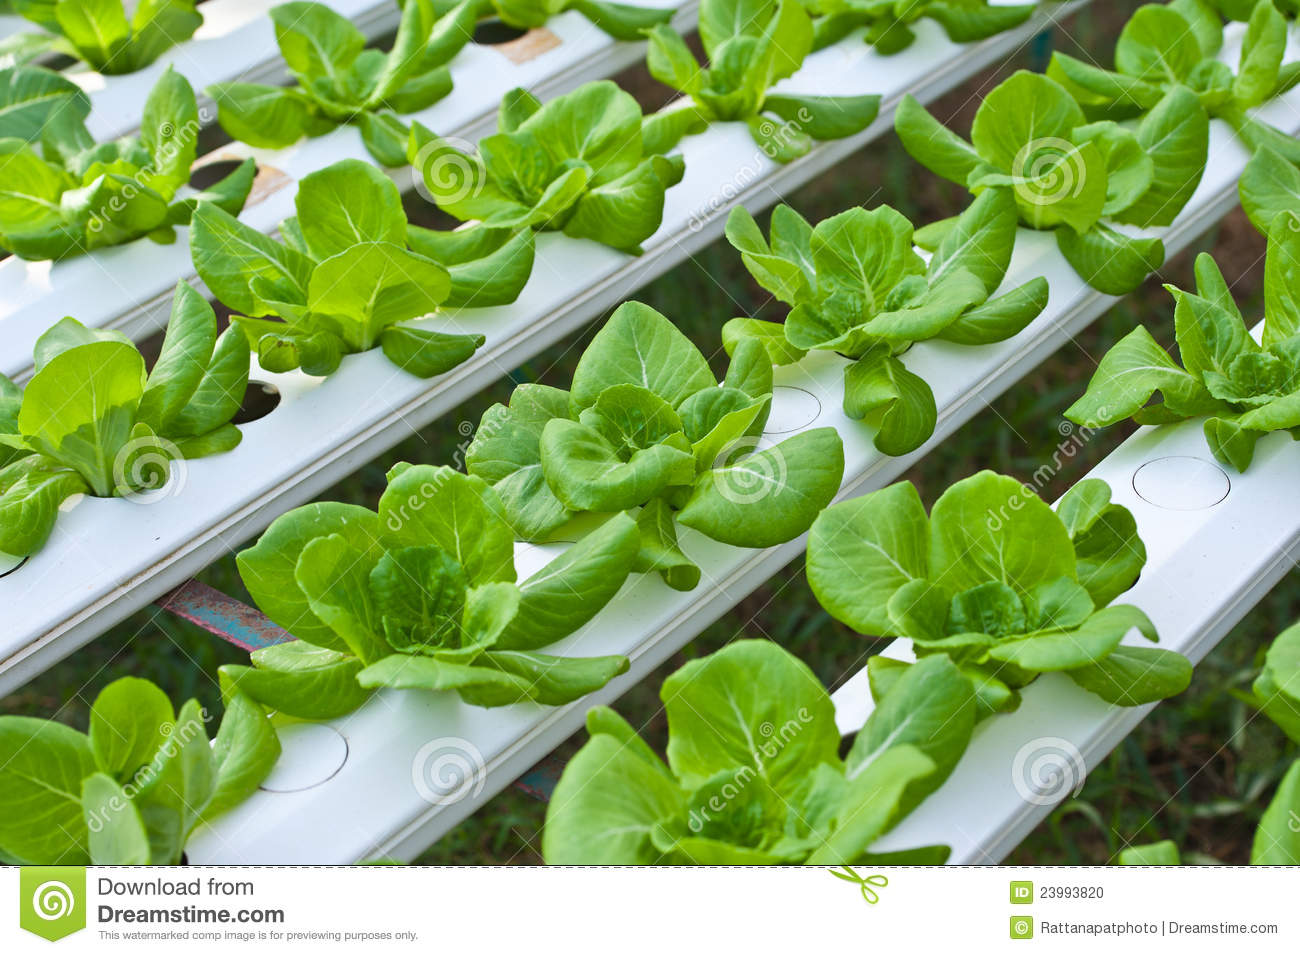 how to grow hydroponic vegetables